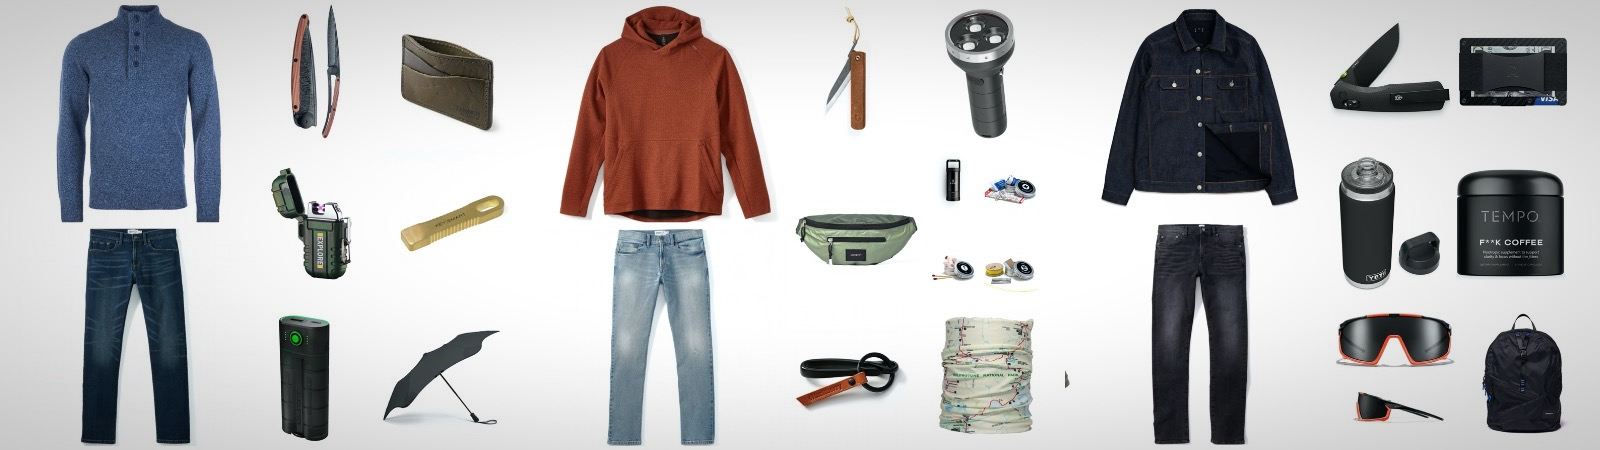 50 'Things We Want' This Week: Leather Boots, Drinking Essentials, Pocket Knives, And More